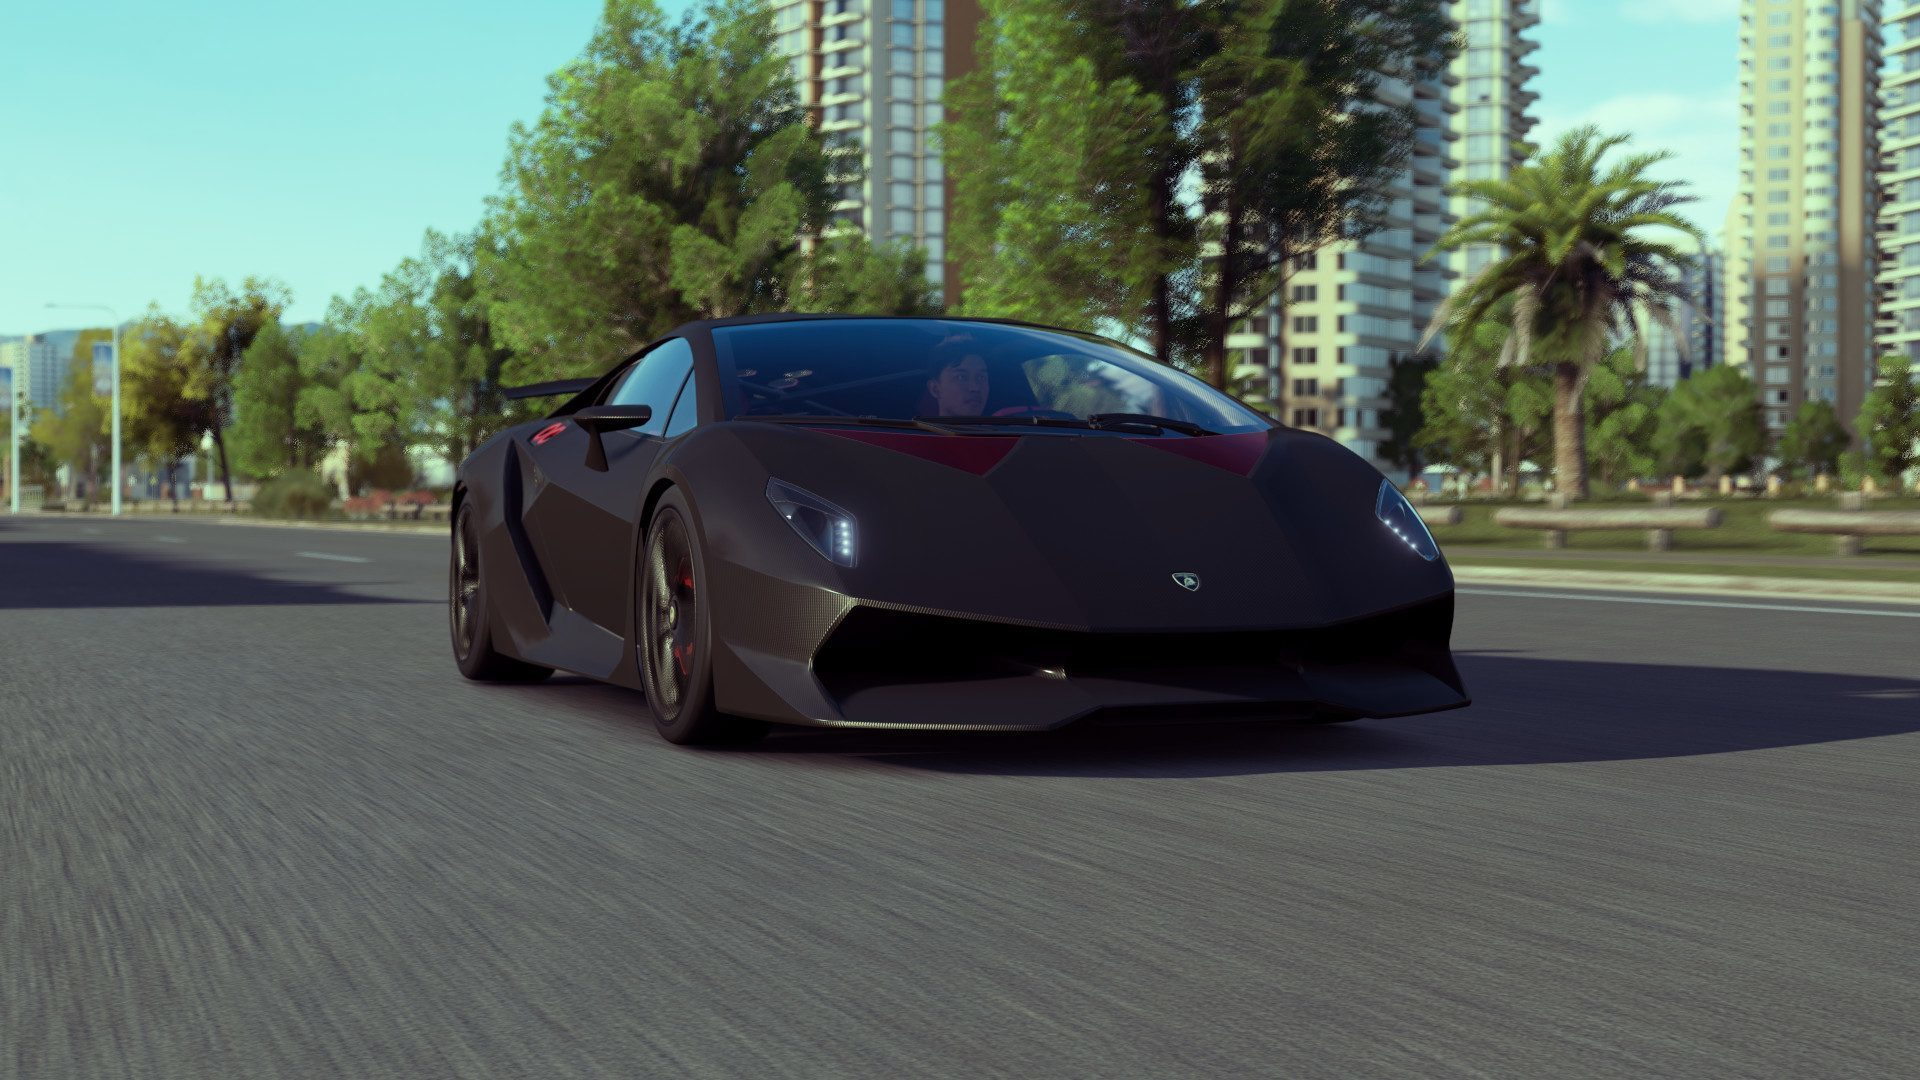 The Lamborghini Sesto Elemento Returns To Forza In A Foolery Filled Forzathon